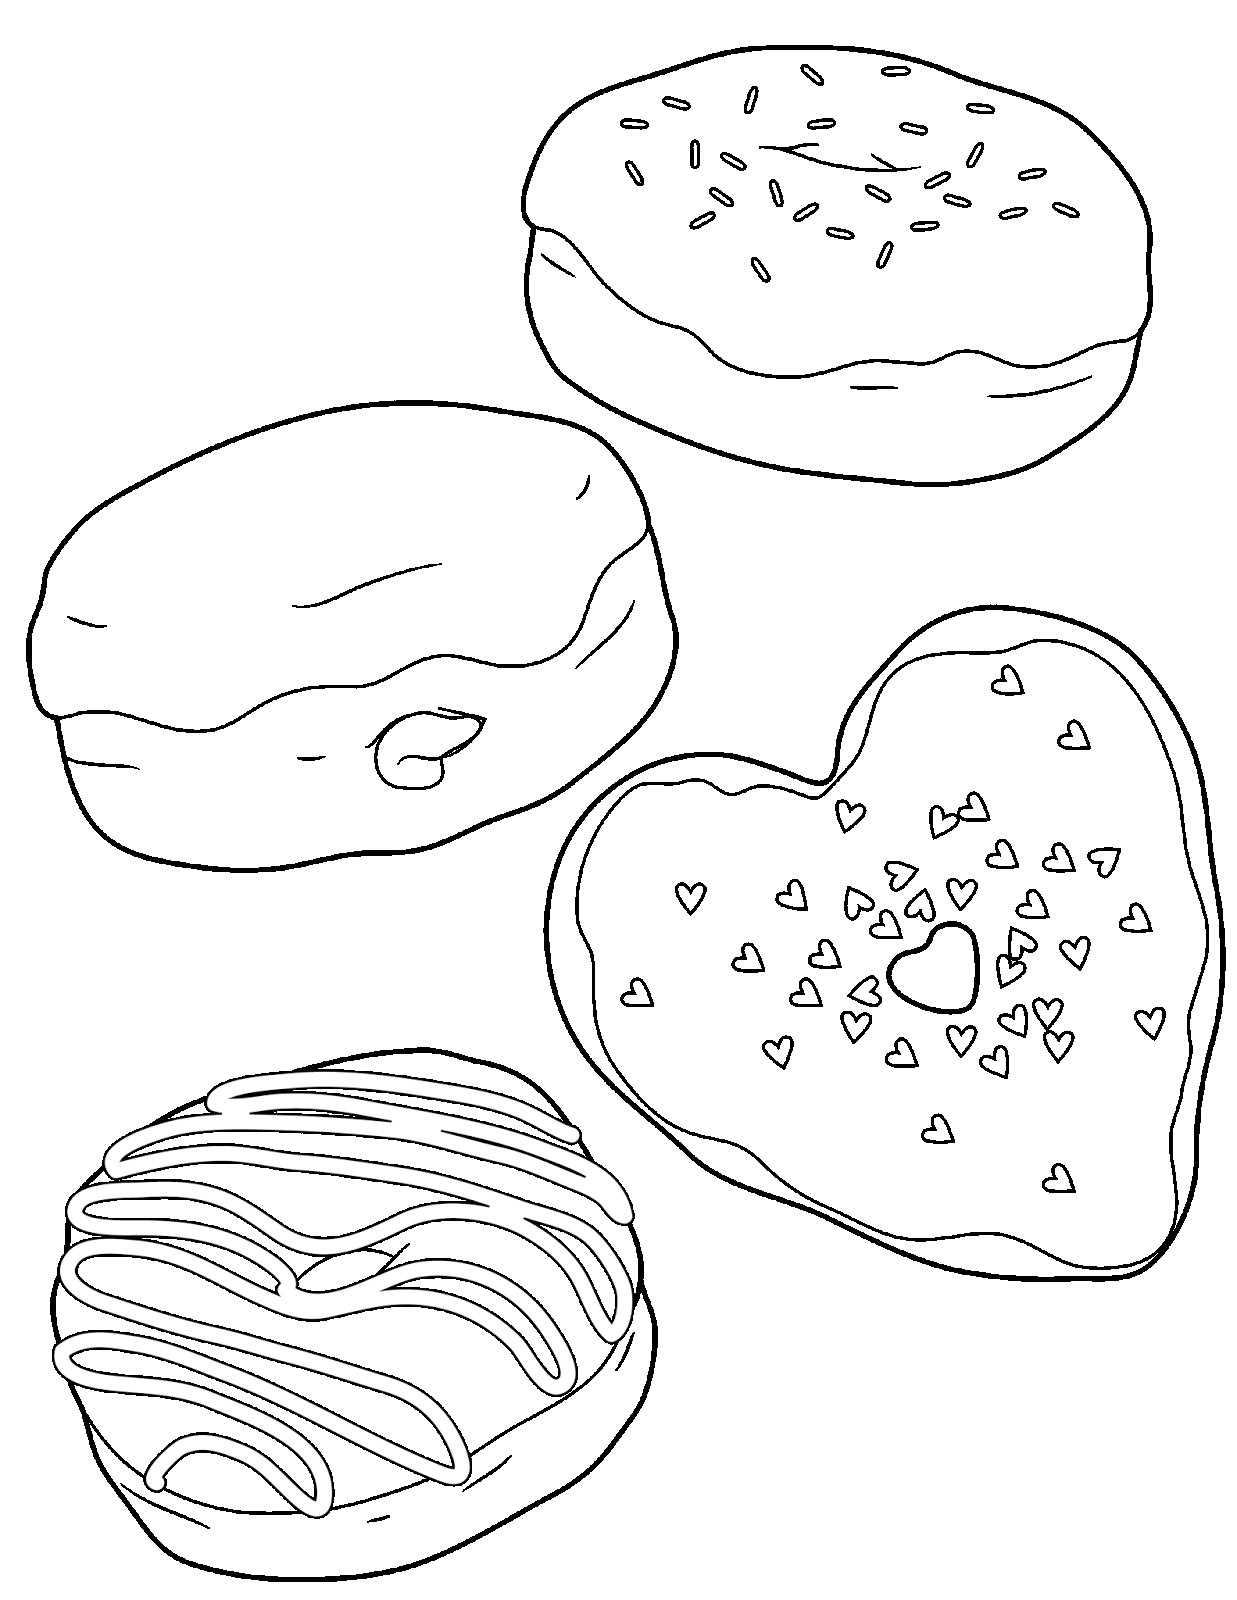 - Donut Coloring Pages - Best Coloring Pages For Kids